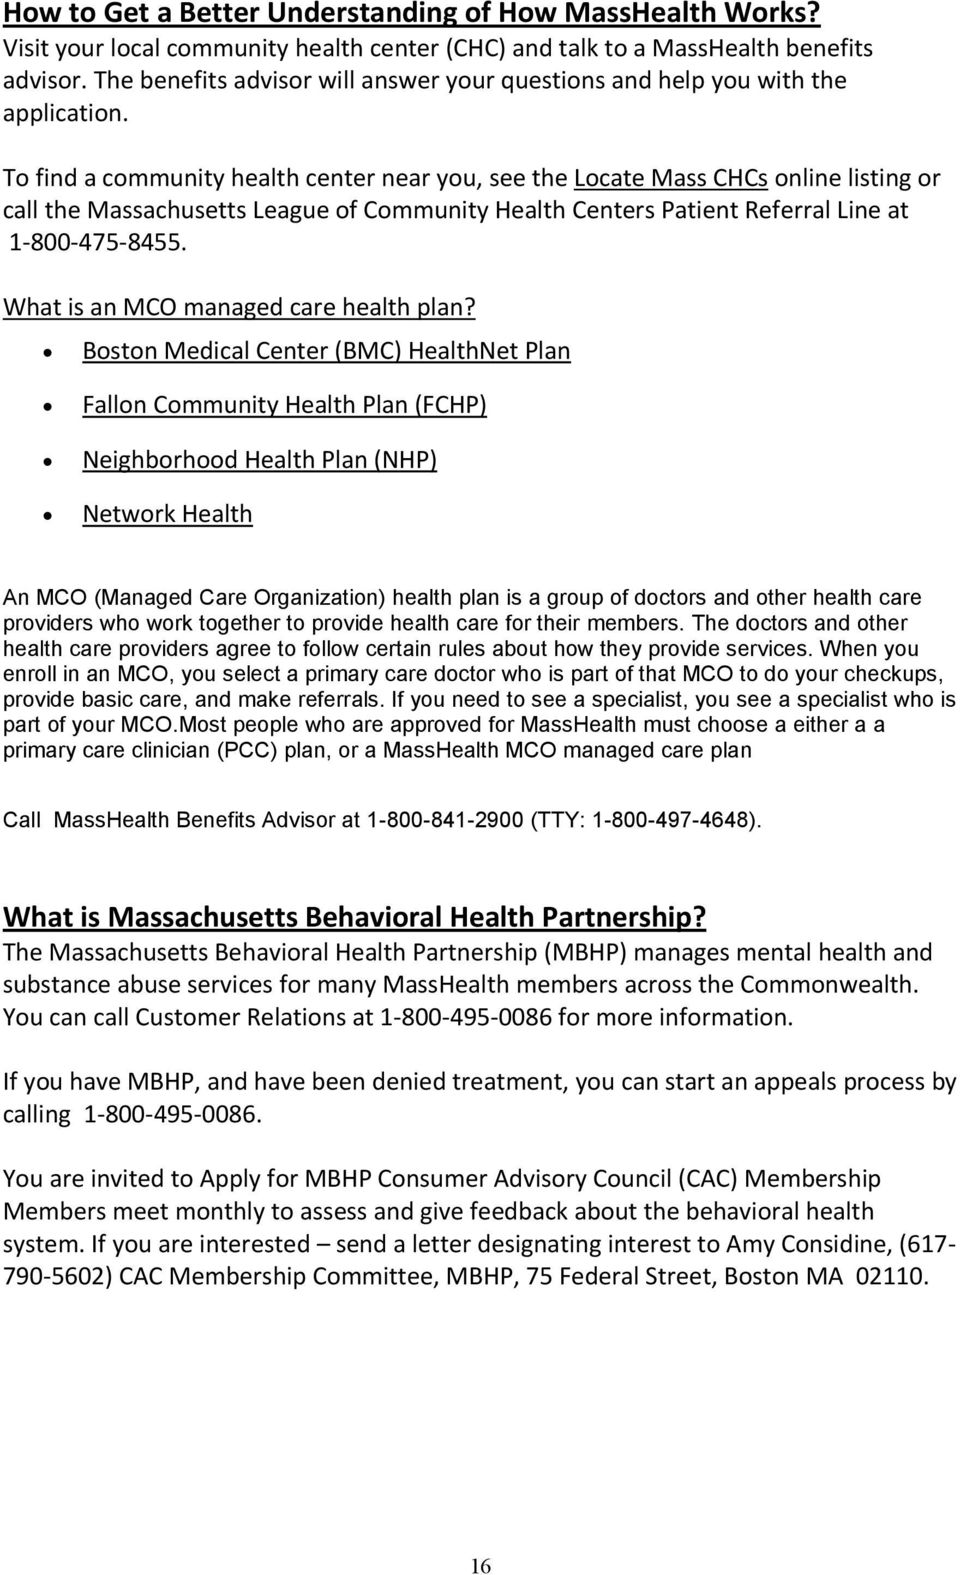 To find a community health center near you, see the Locate Mass CHCs online listing or call the Massachusetts League of Community Health Centers Patient Referral Line at 1-800-475-8455.